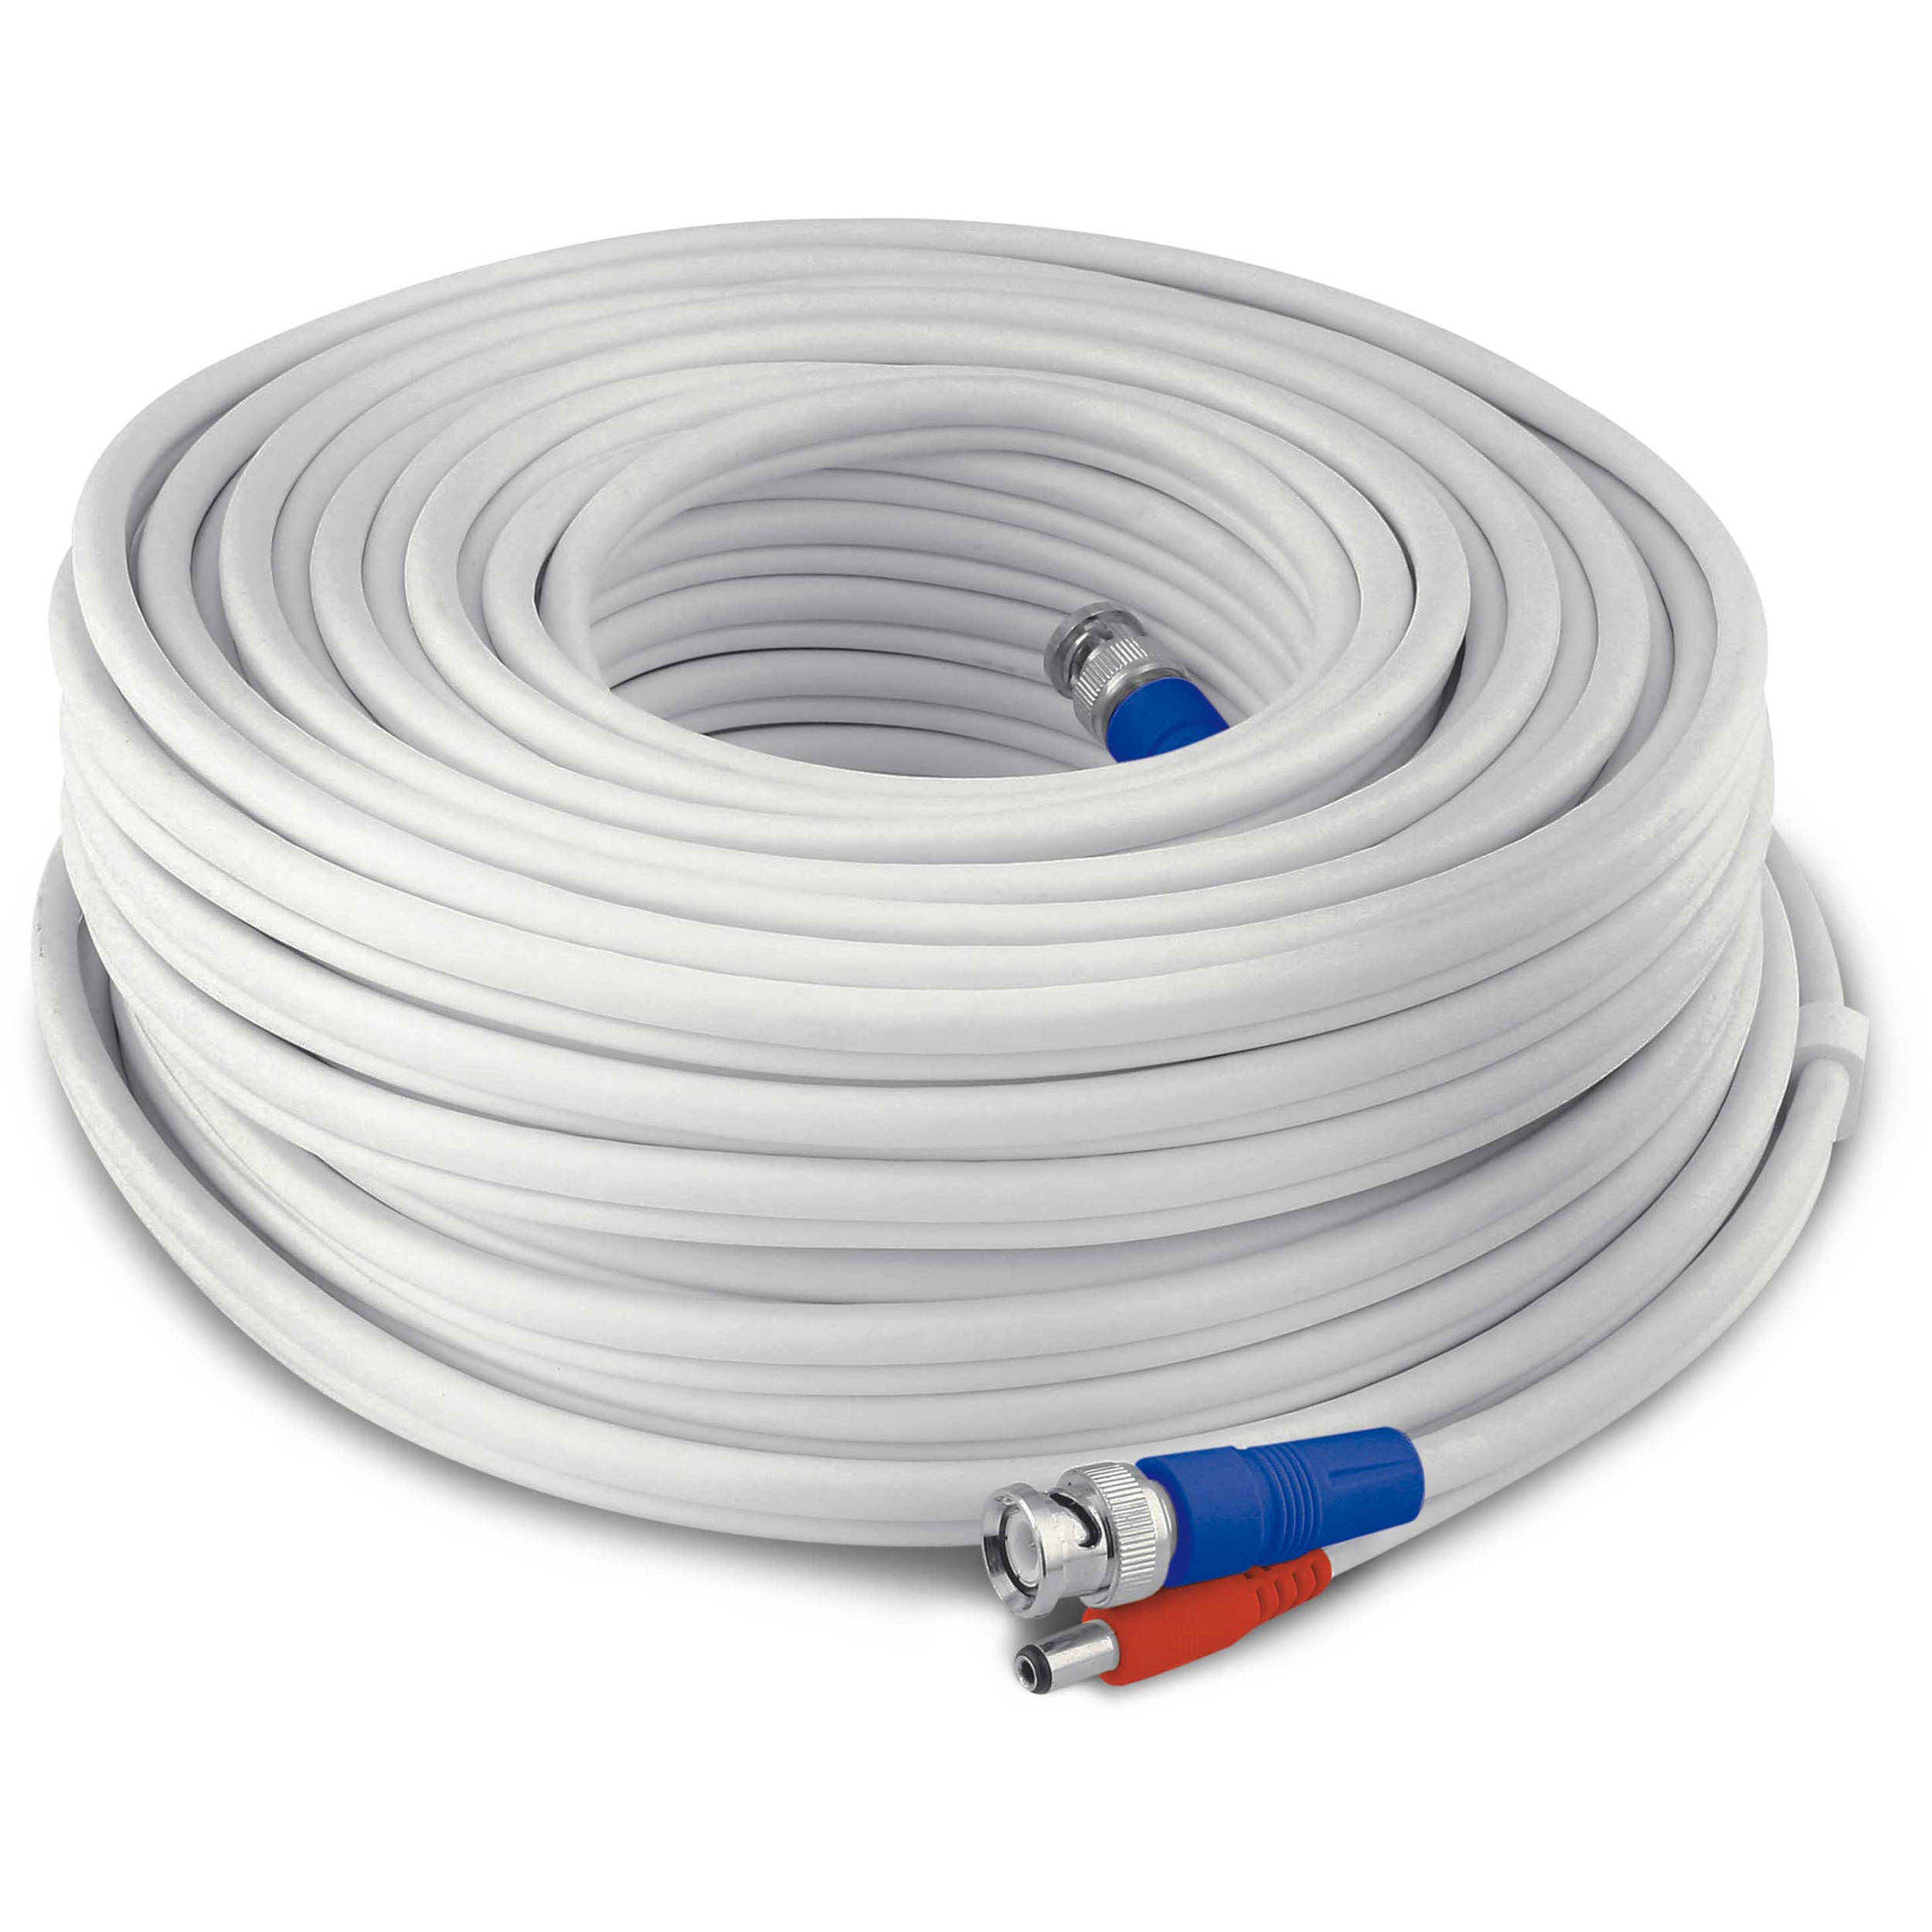 Swann Pro-Series HD Video and Power Cable (100\') SWPRO-30MTVF-GL